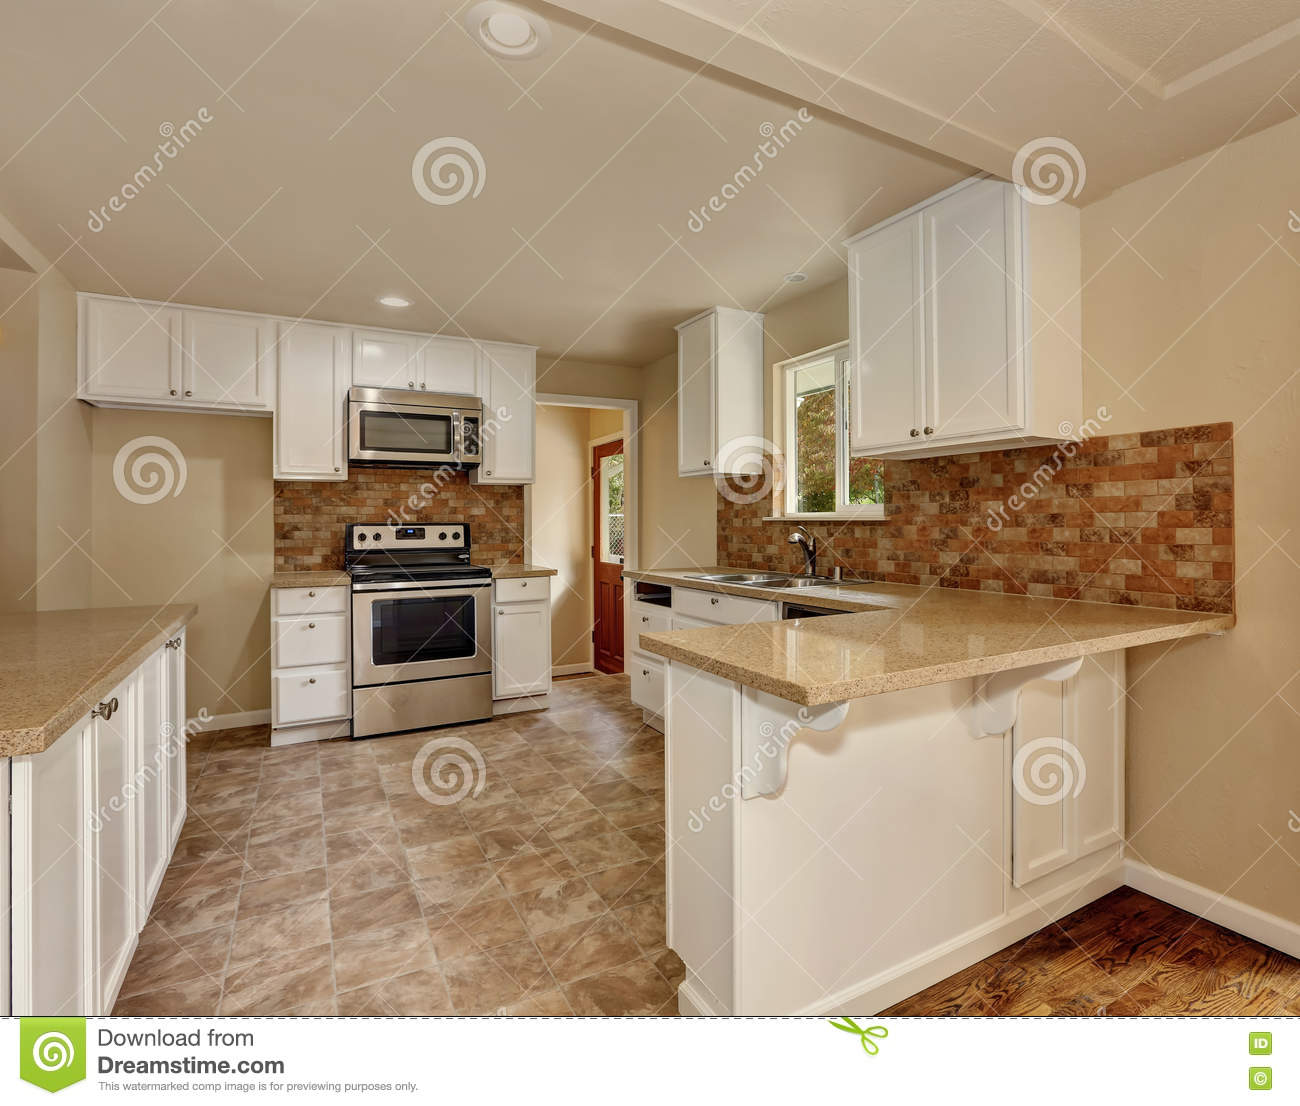 American classic style kitchen room interior stock photo for American classic interior